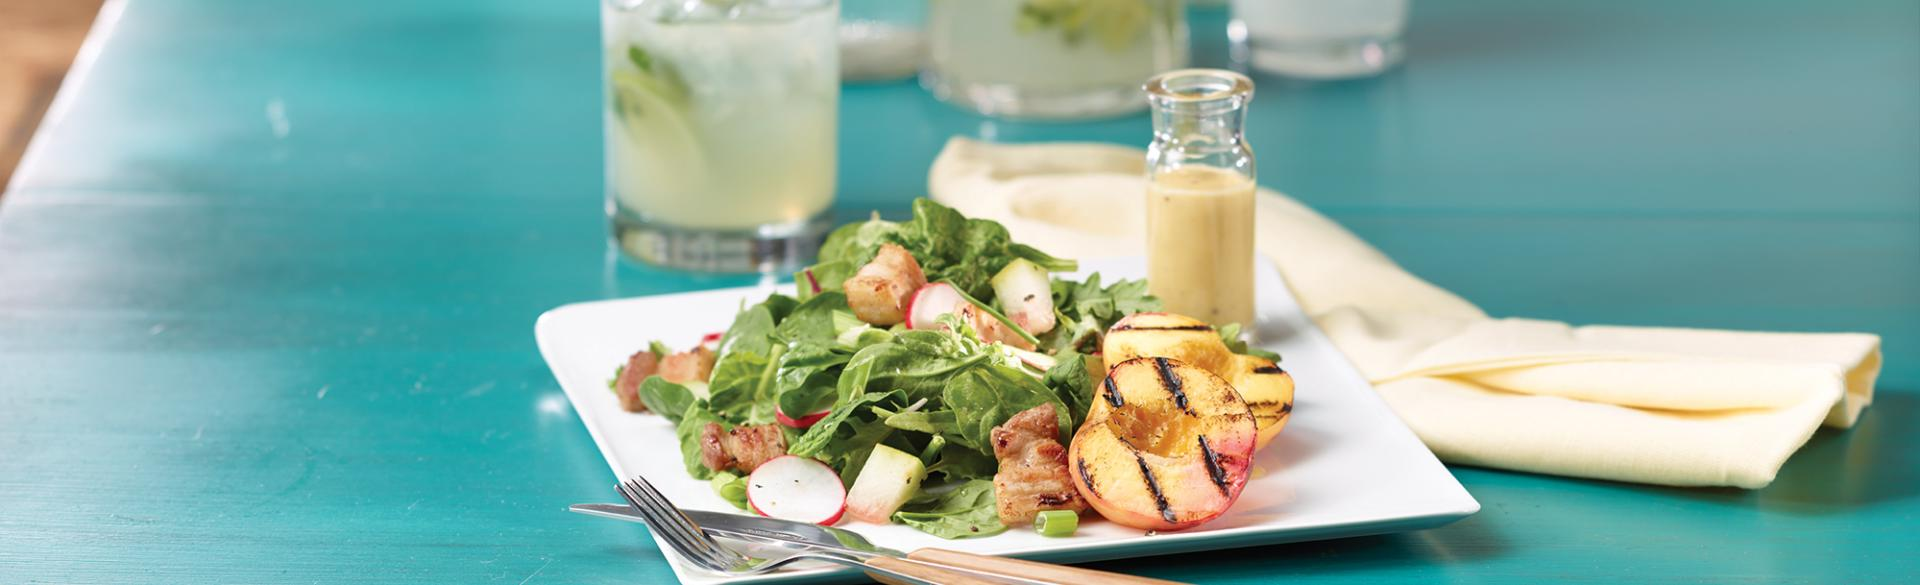 Food - Peach Salad